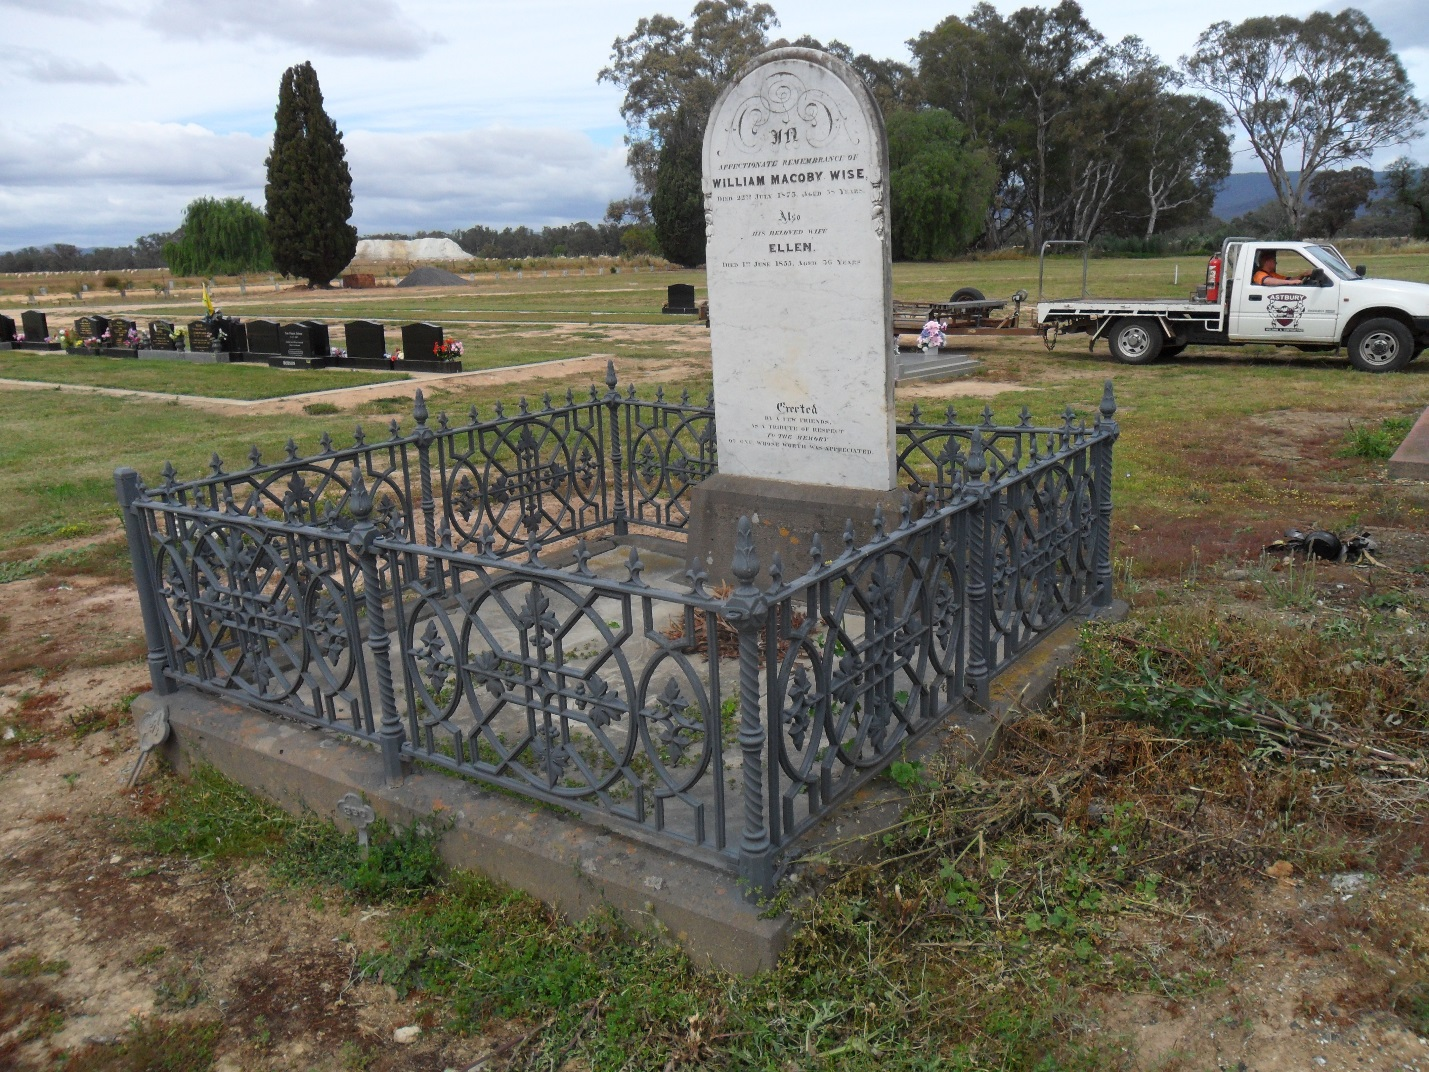 C:\Users\Virginia Rundle\Pictures\Wise Photos\William McOboy Wise grave after VIR restoration 002.jpg